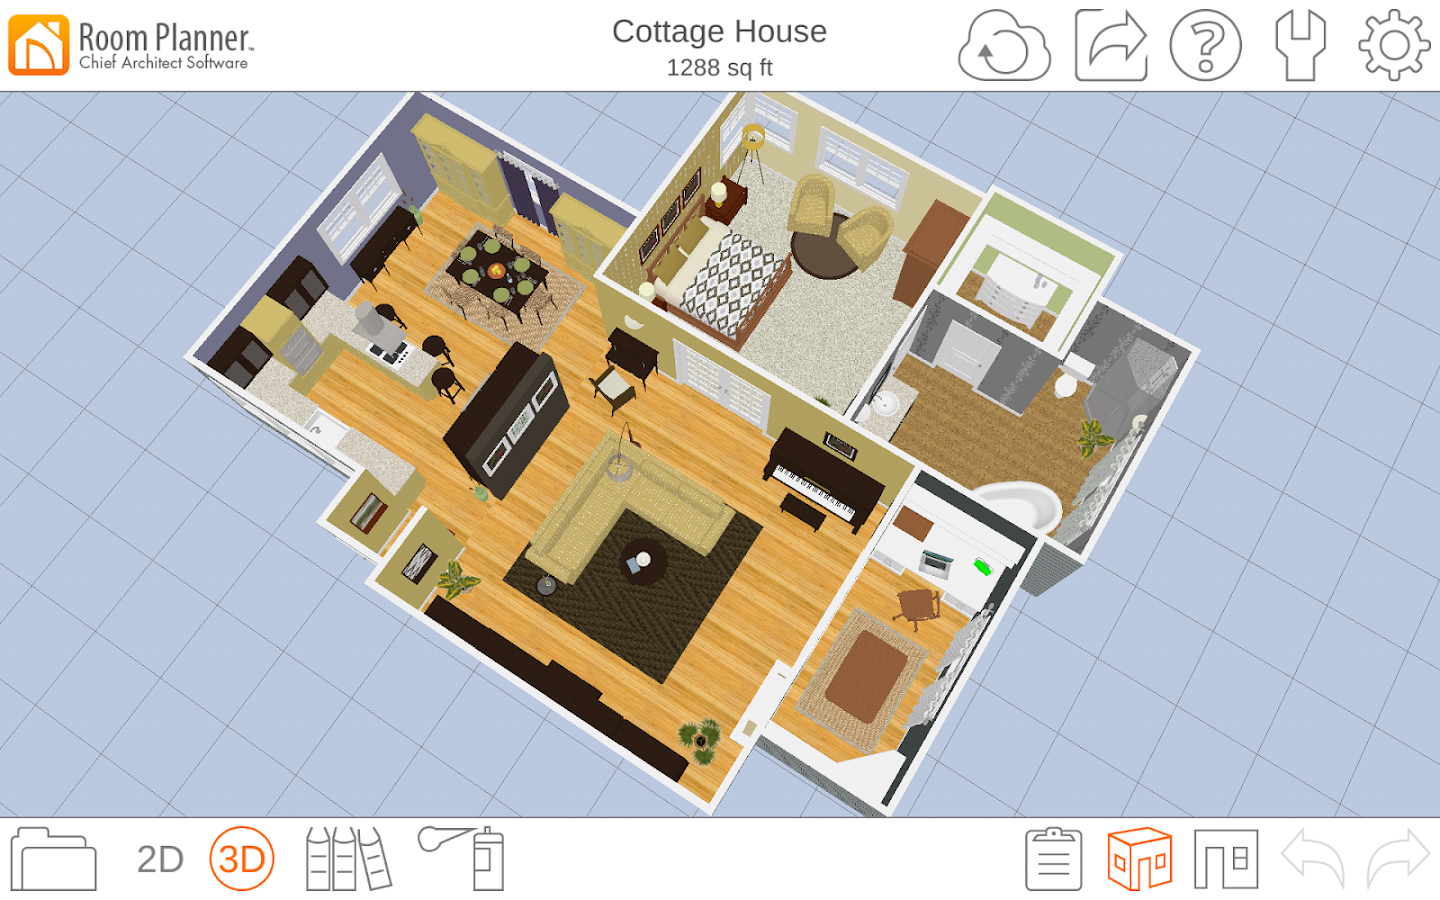 Room Planner Home Design Android Apps On Google Play: best room planner app